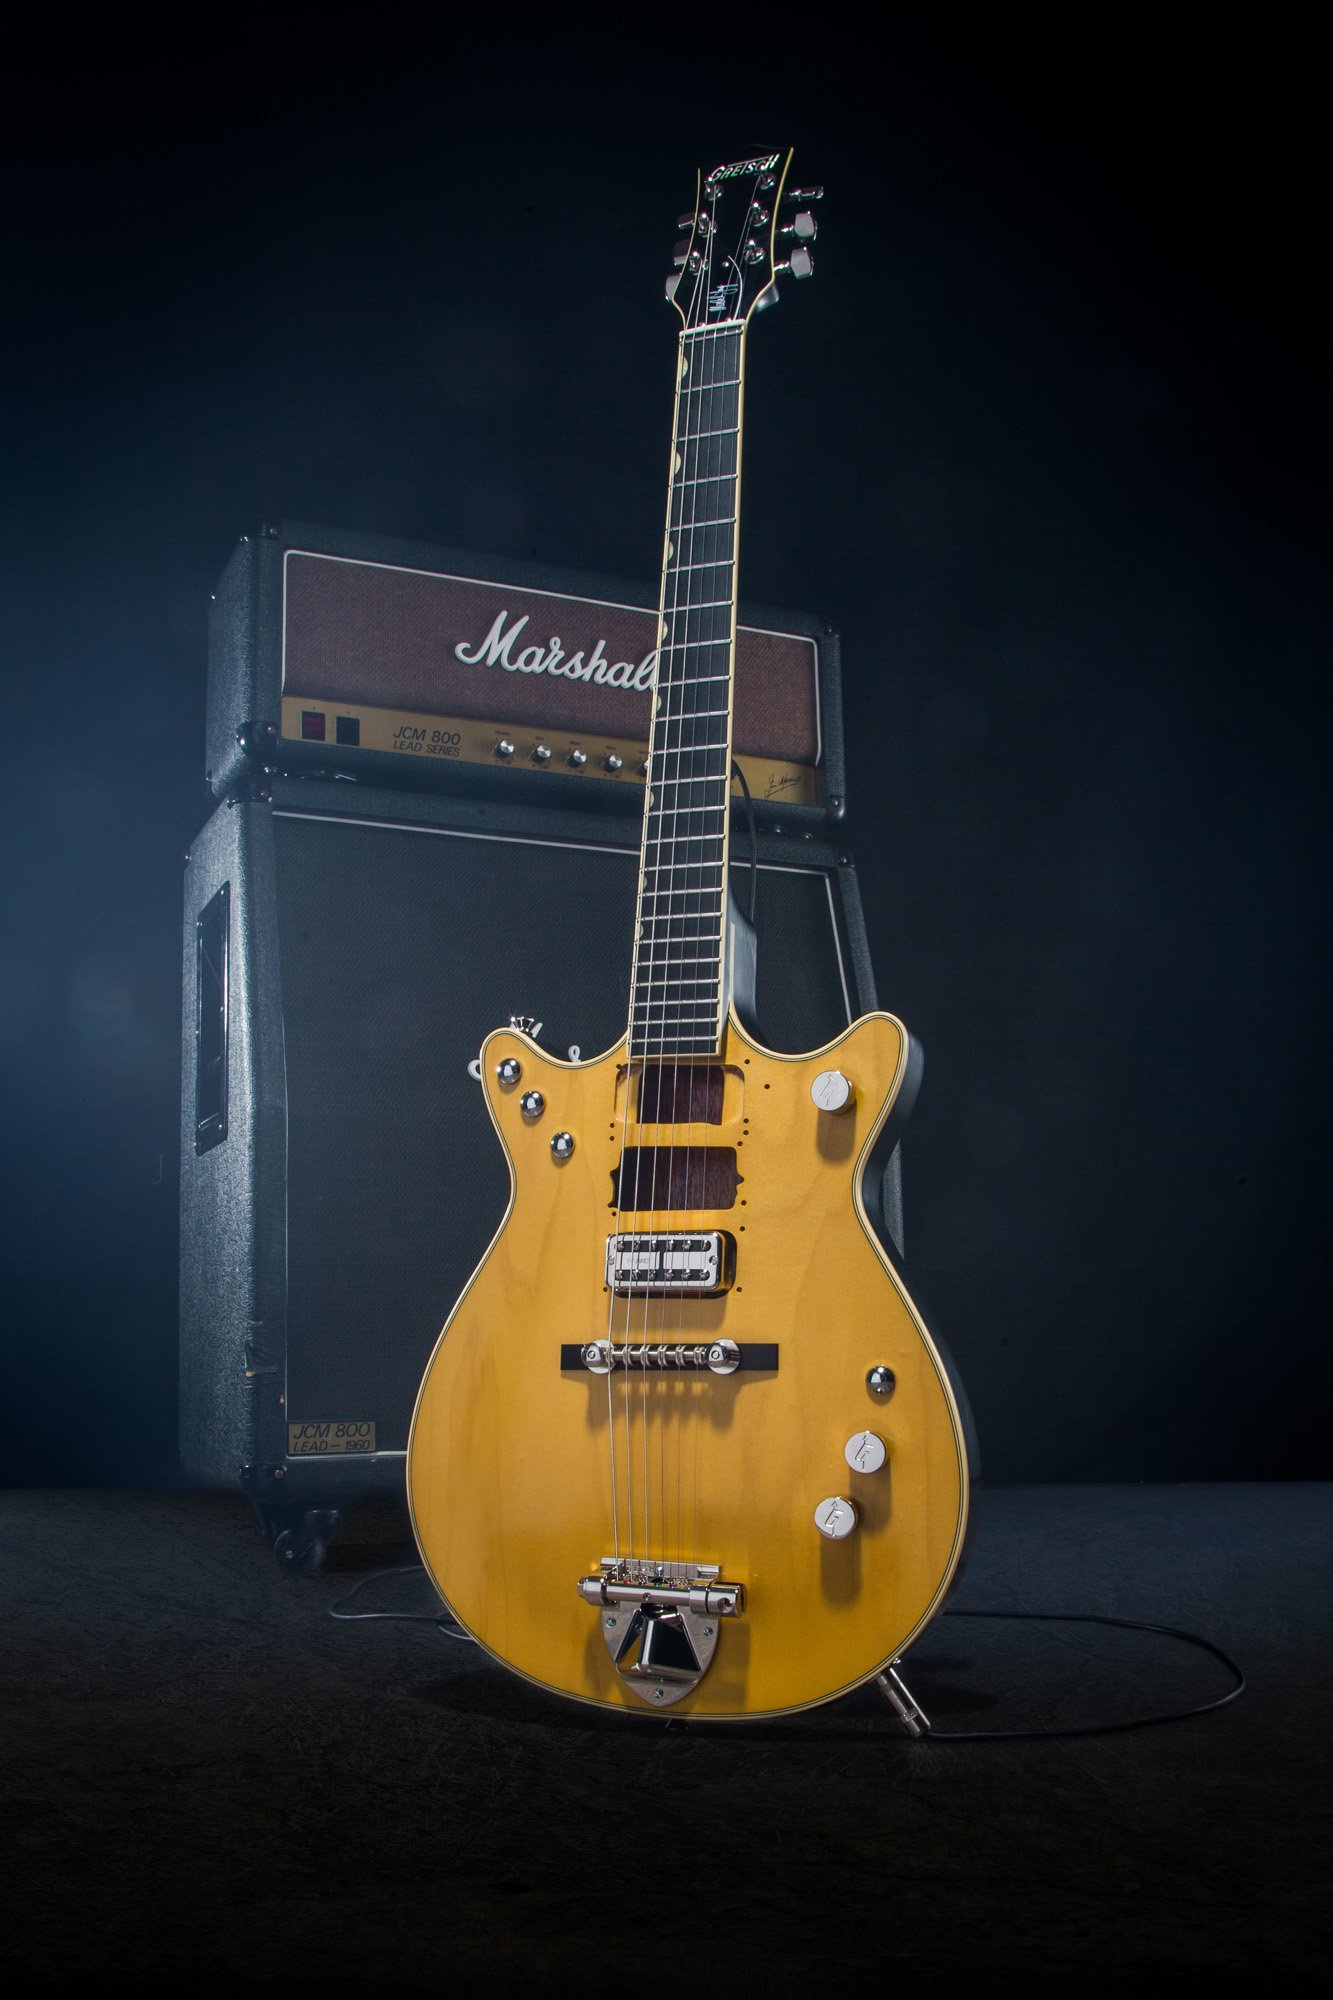 Reloaded twaddle – RT @GretschUSA: Proud to unveil the G6131-MY Malcolm Young Signature Jet™...